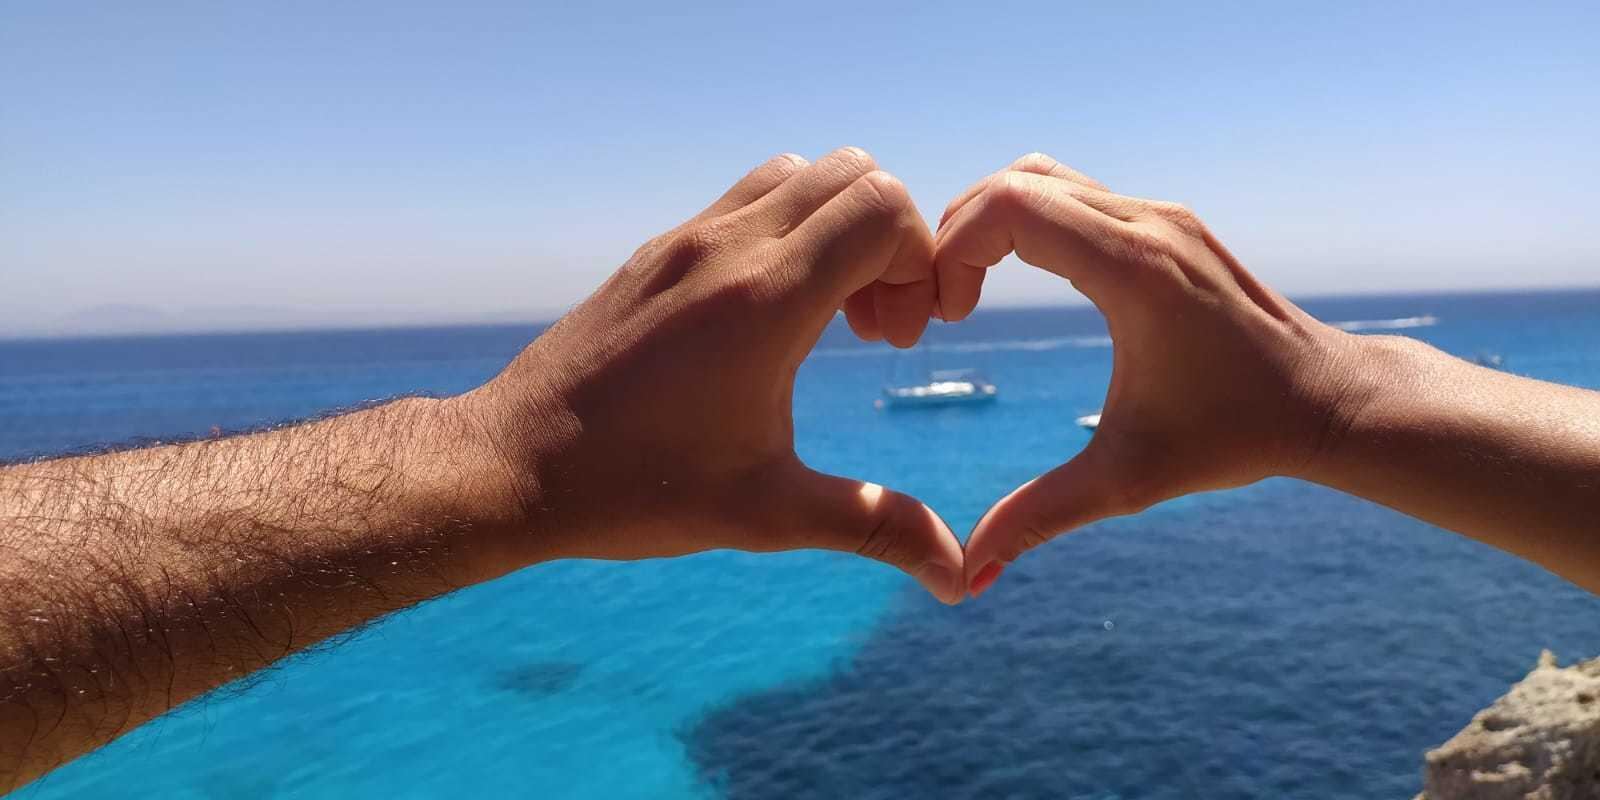 All inclusive cruise to the Egadi islands. Just think about relaxing ... we'll take care of the rest!